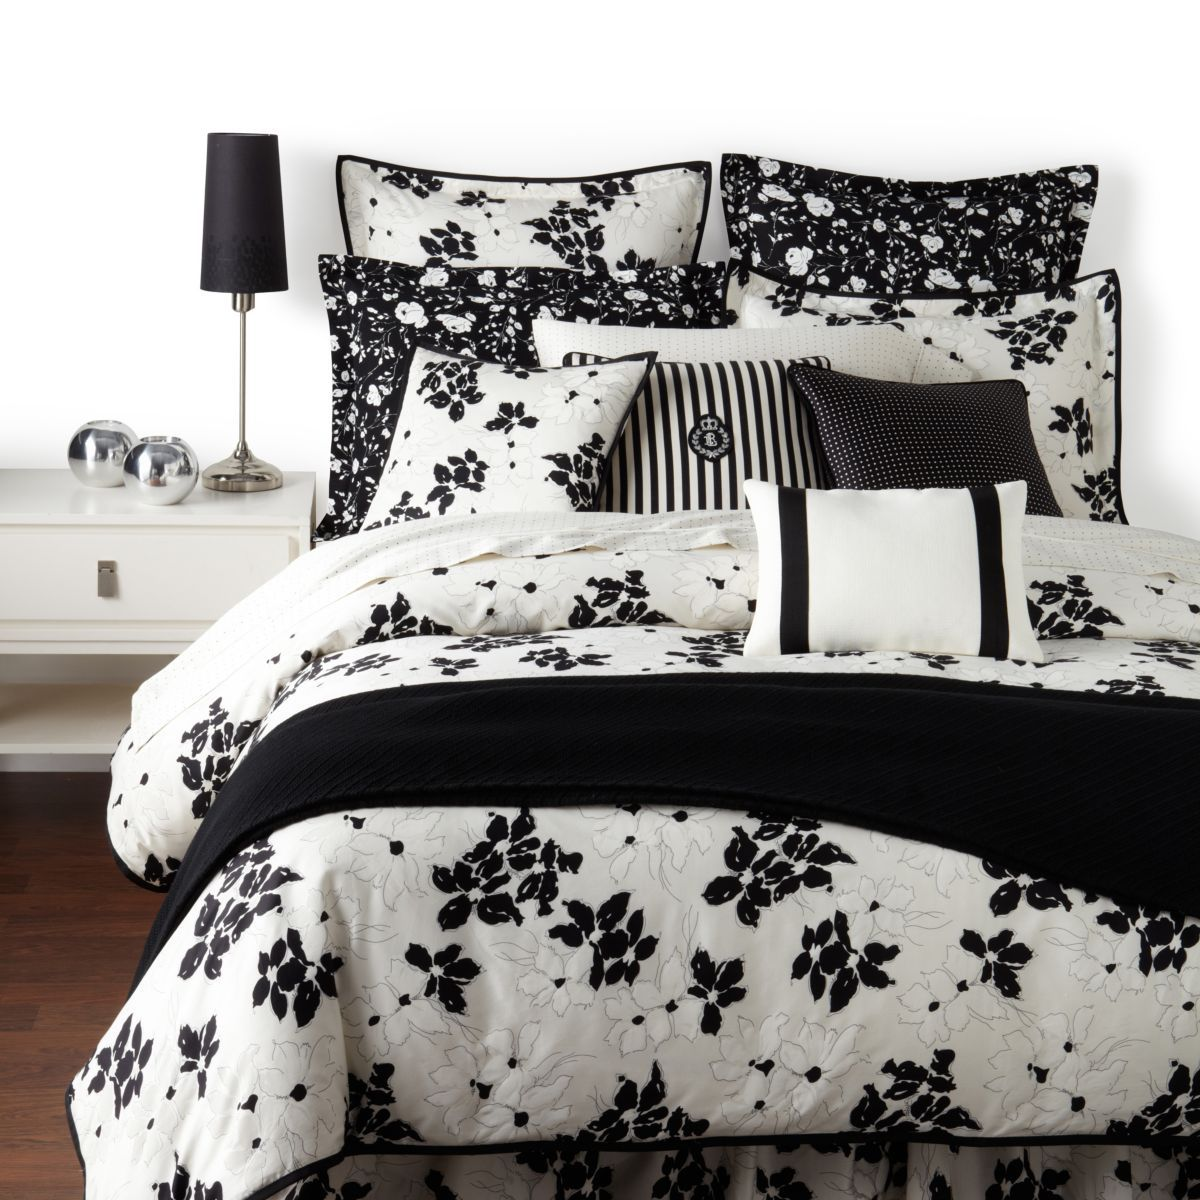 Black and white floral bed sheets - Lauren By Ralph Lauren Port Palace Bedding Summer Floral Receive A Chic Update In